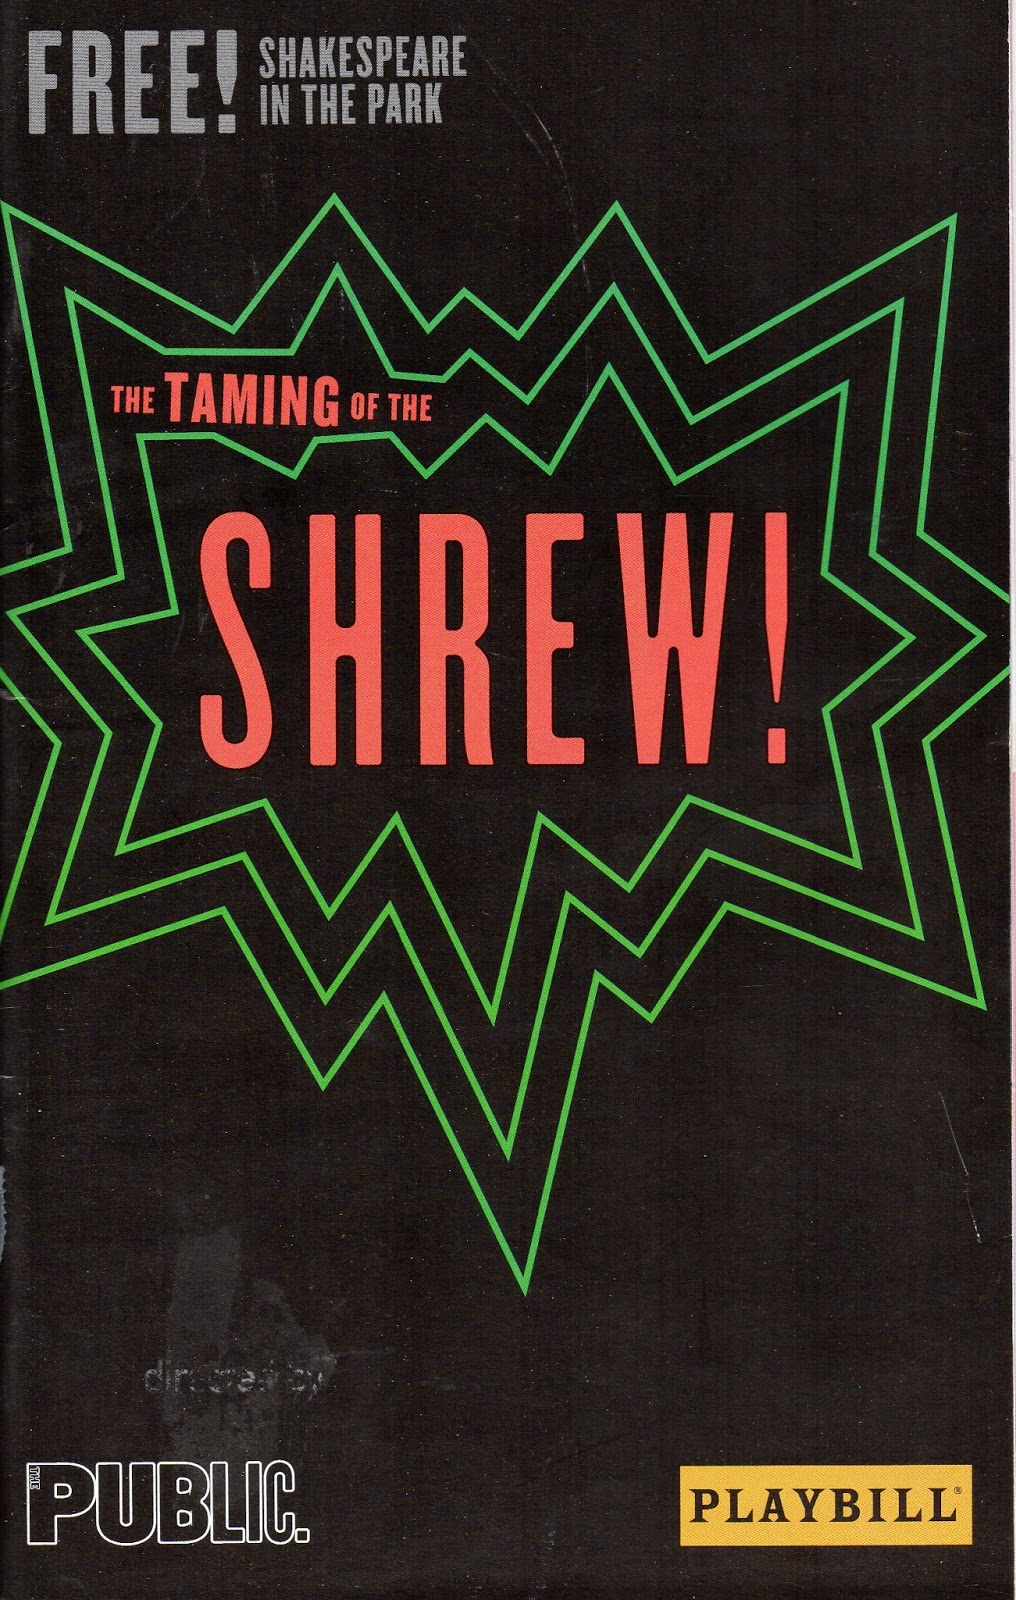 taming of the shrew play review essay Download thesis statement on analytic play review of the taming of the shrew by william shakespeare in our database or order an original thesis paper that will be.